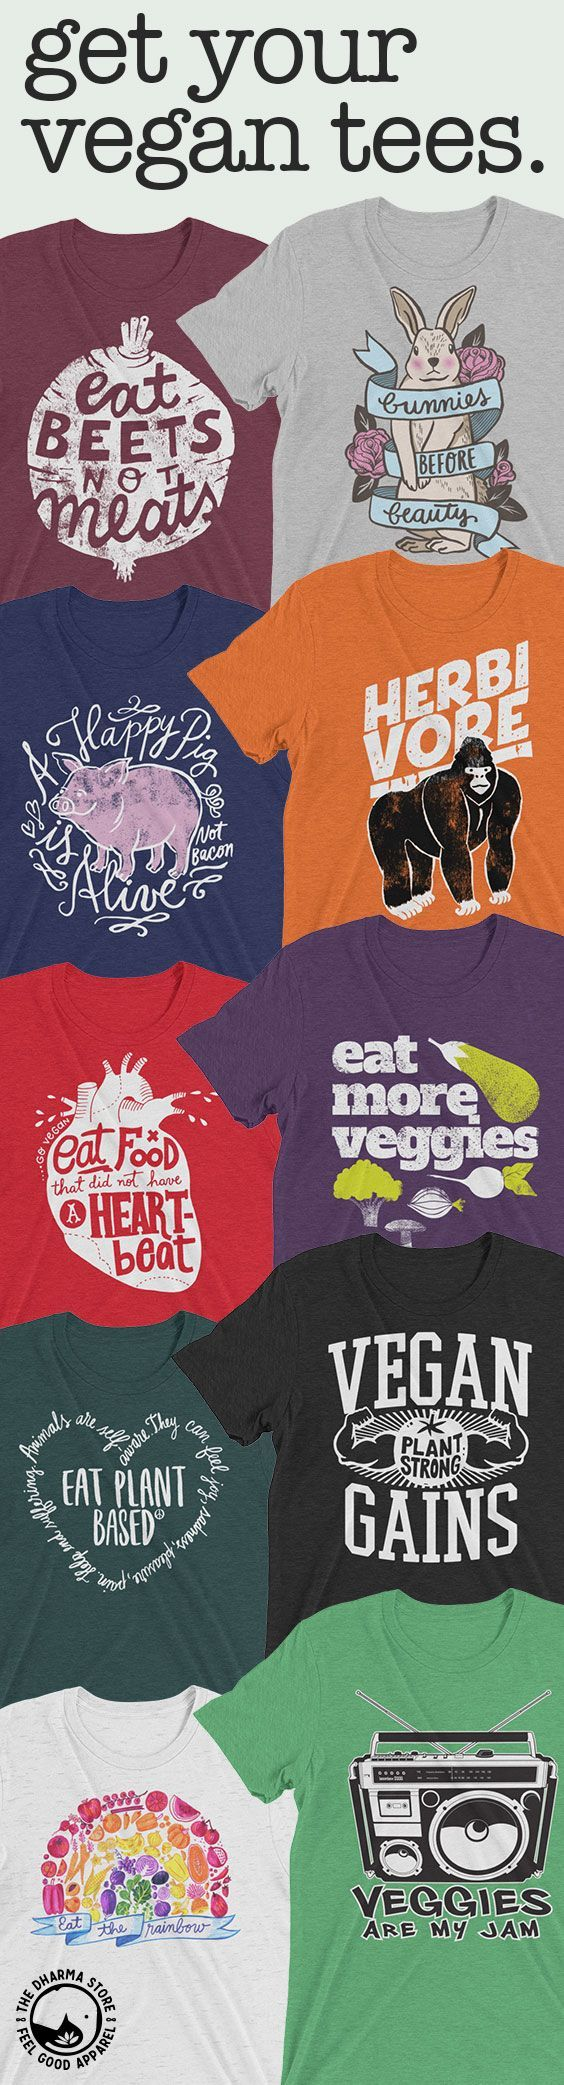 The best #veganshirt selection, hundreds of awesome #vegantshirt designs  from our #veganclothing